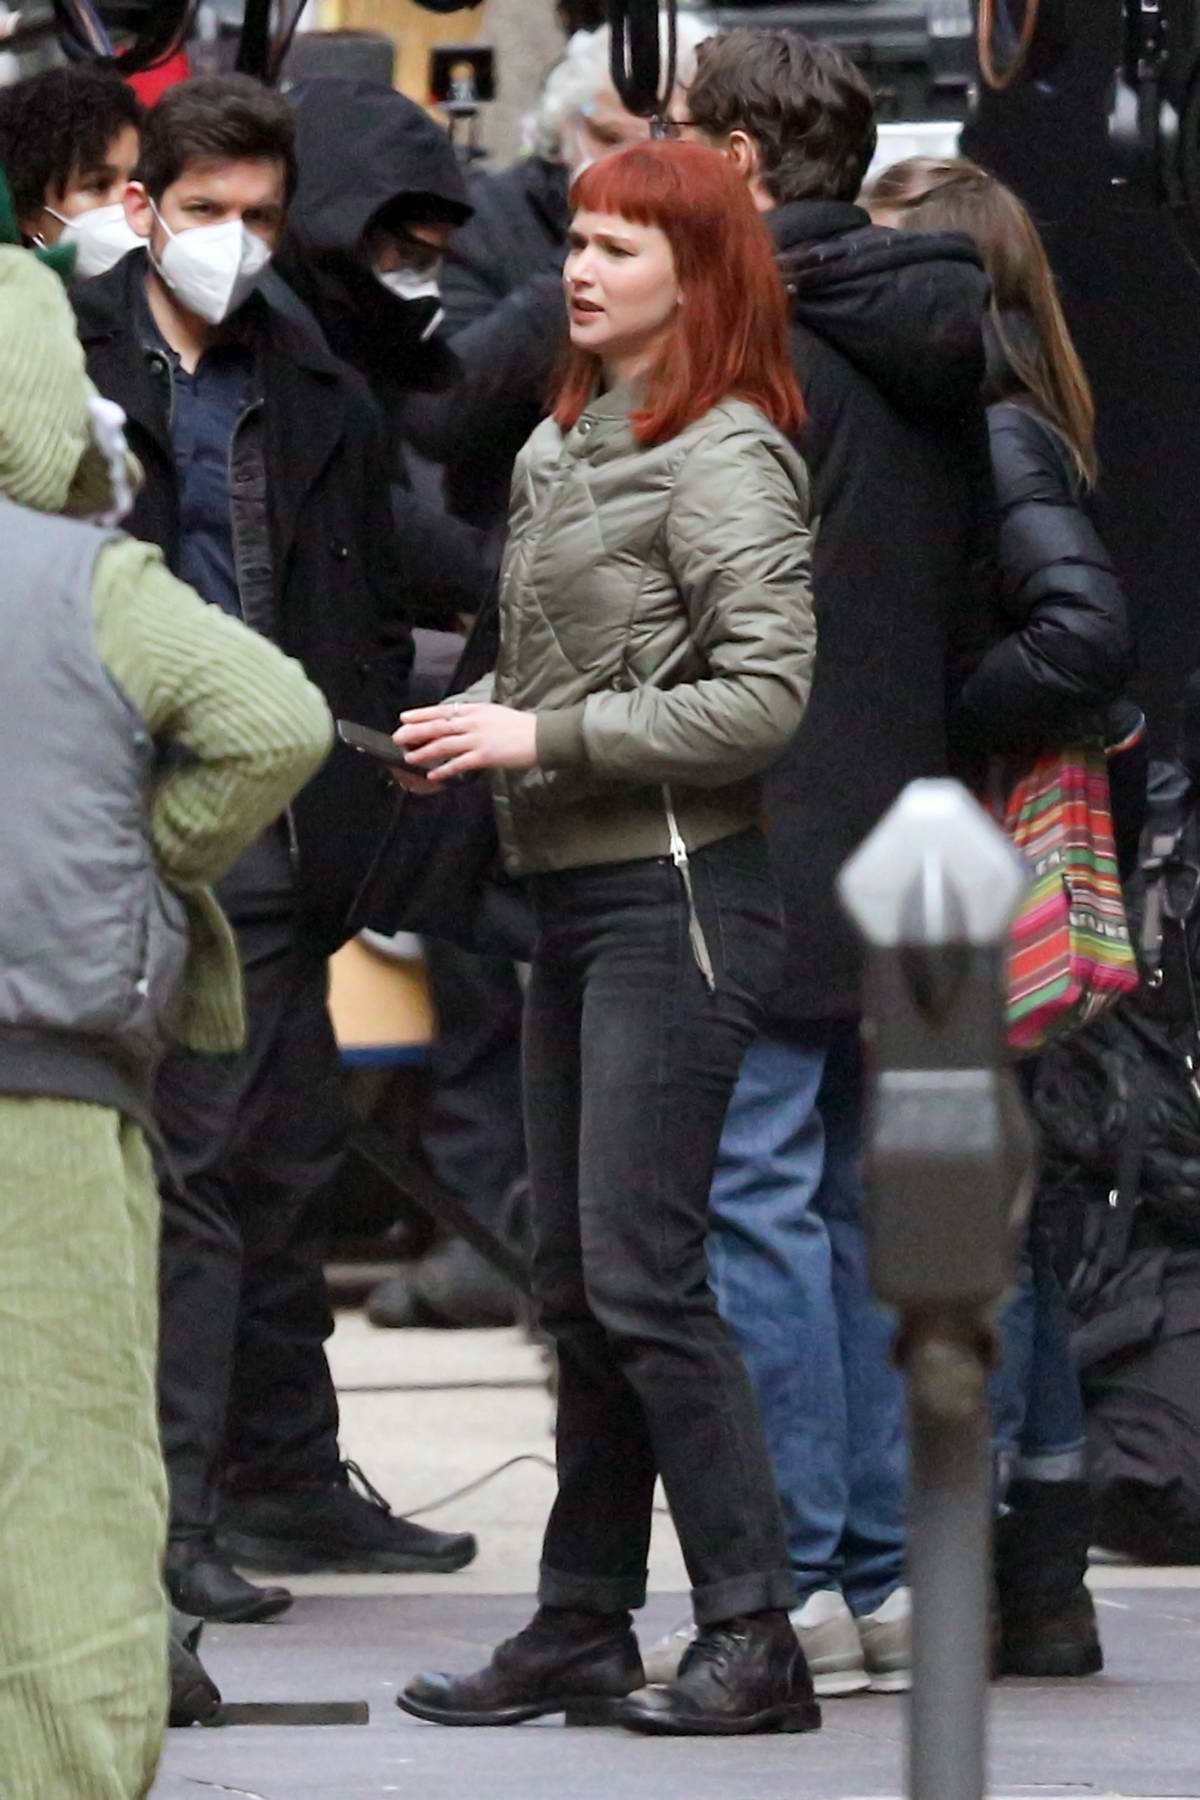 Jennifer Lawrence spotted while filming a scene for 'Don't Look Up' in downtown Boston, Massachusetts